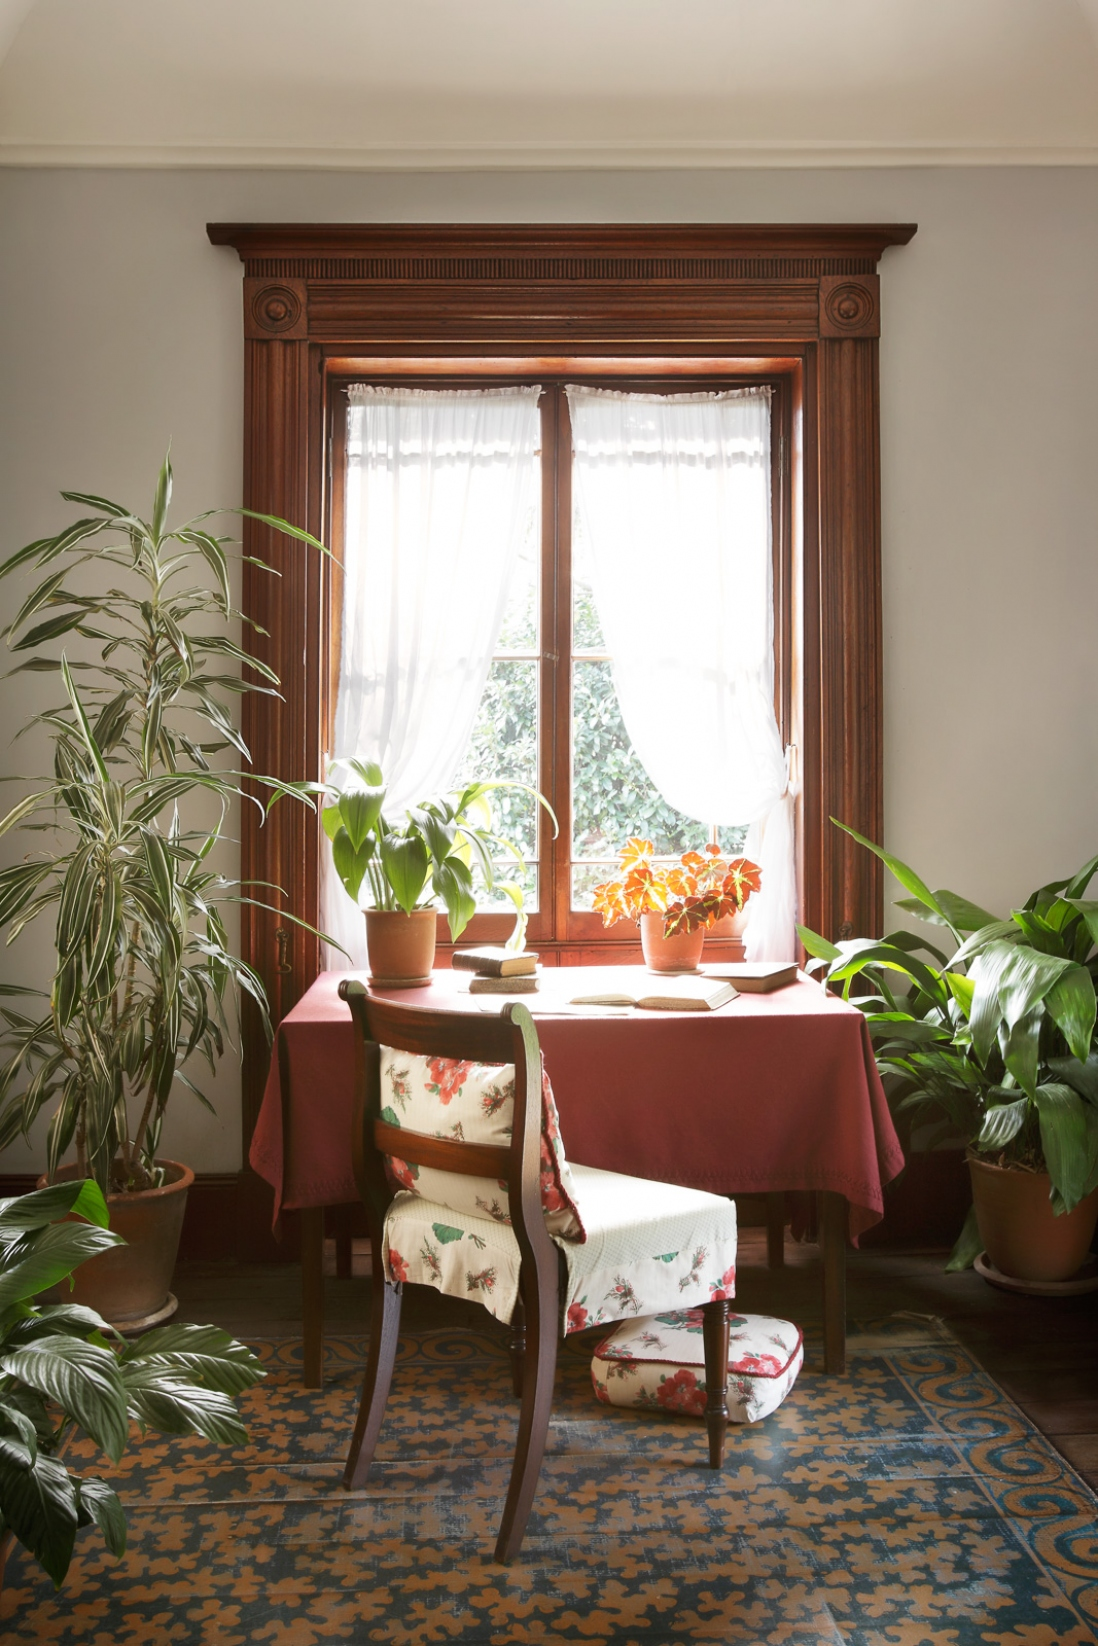 Chair at desk in front of sunny window, with potted plants to either side.